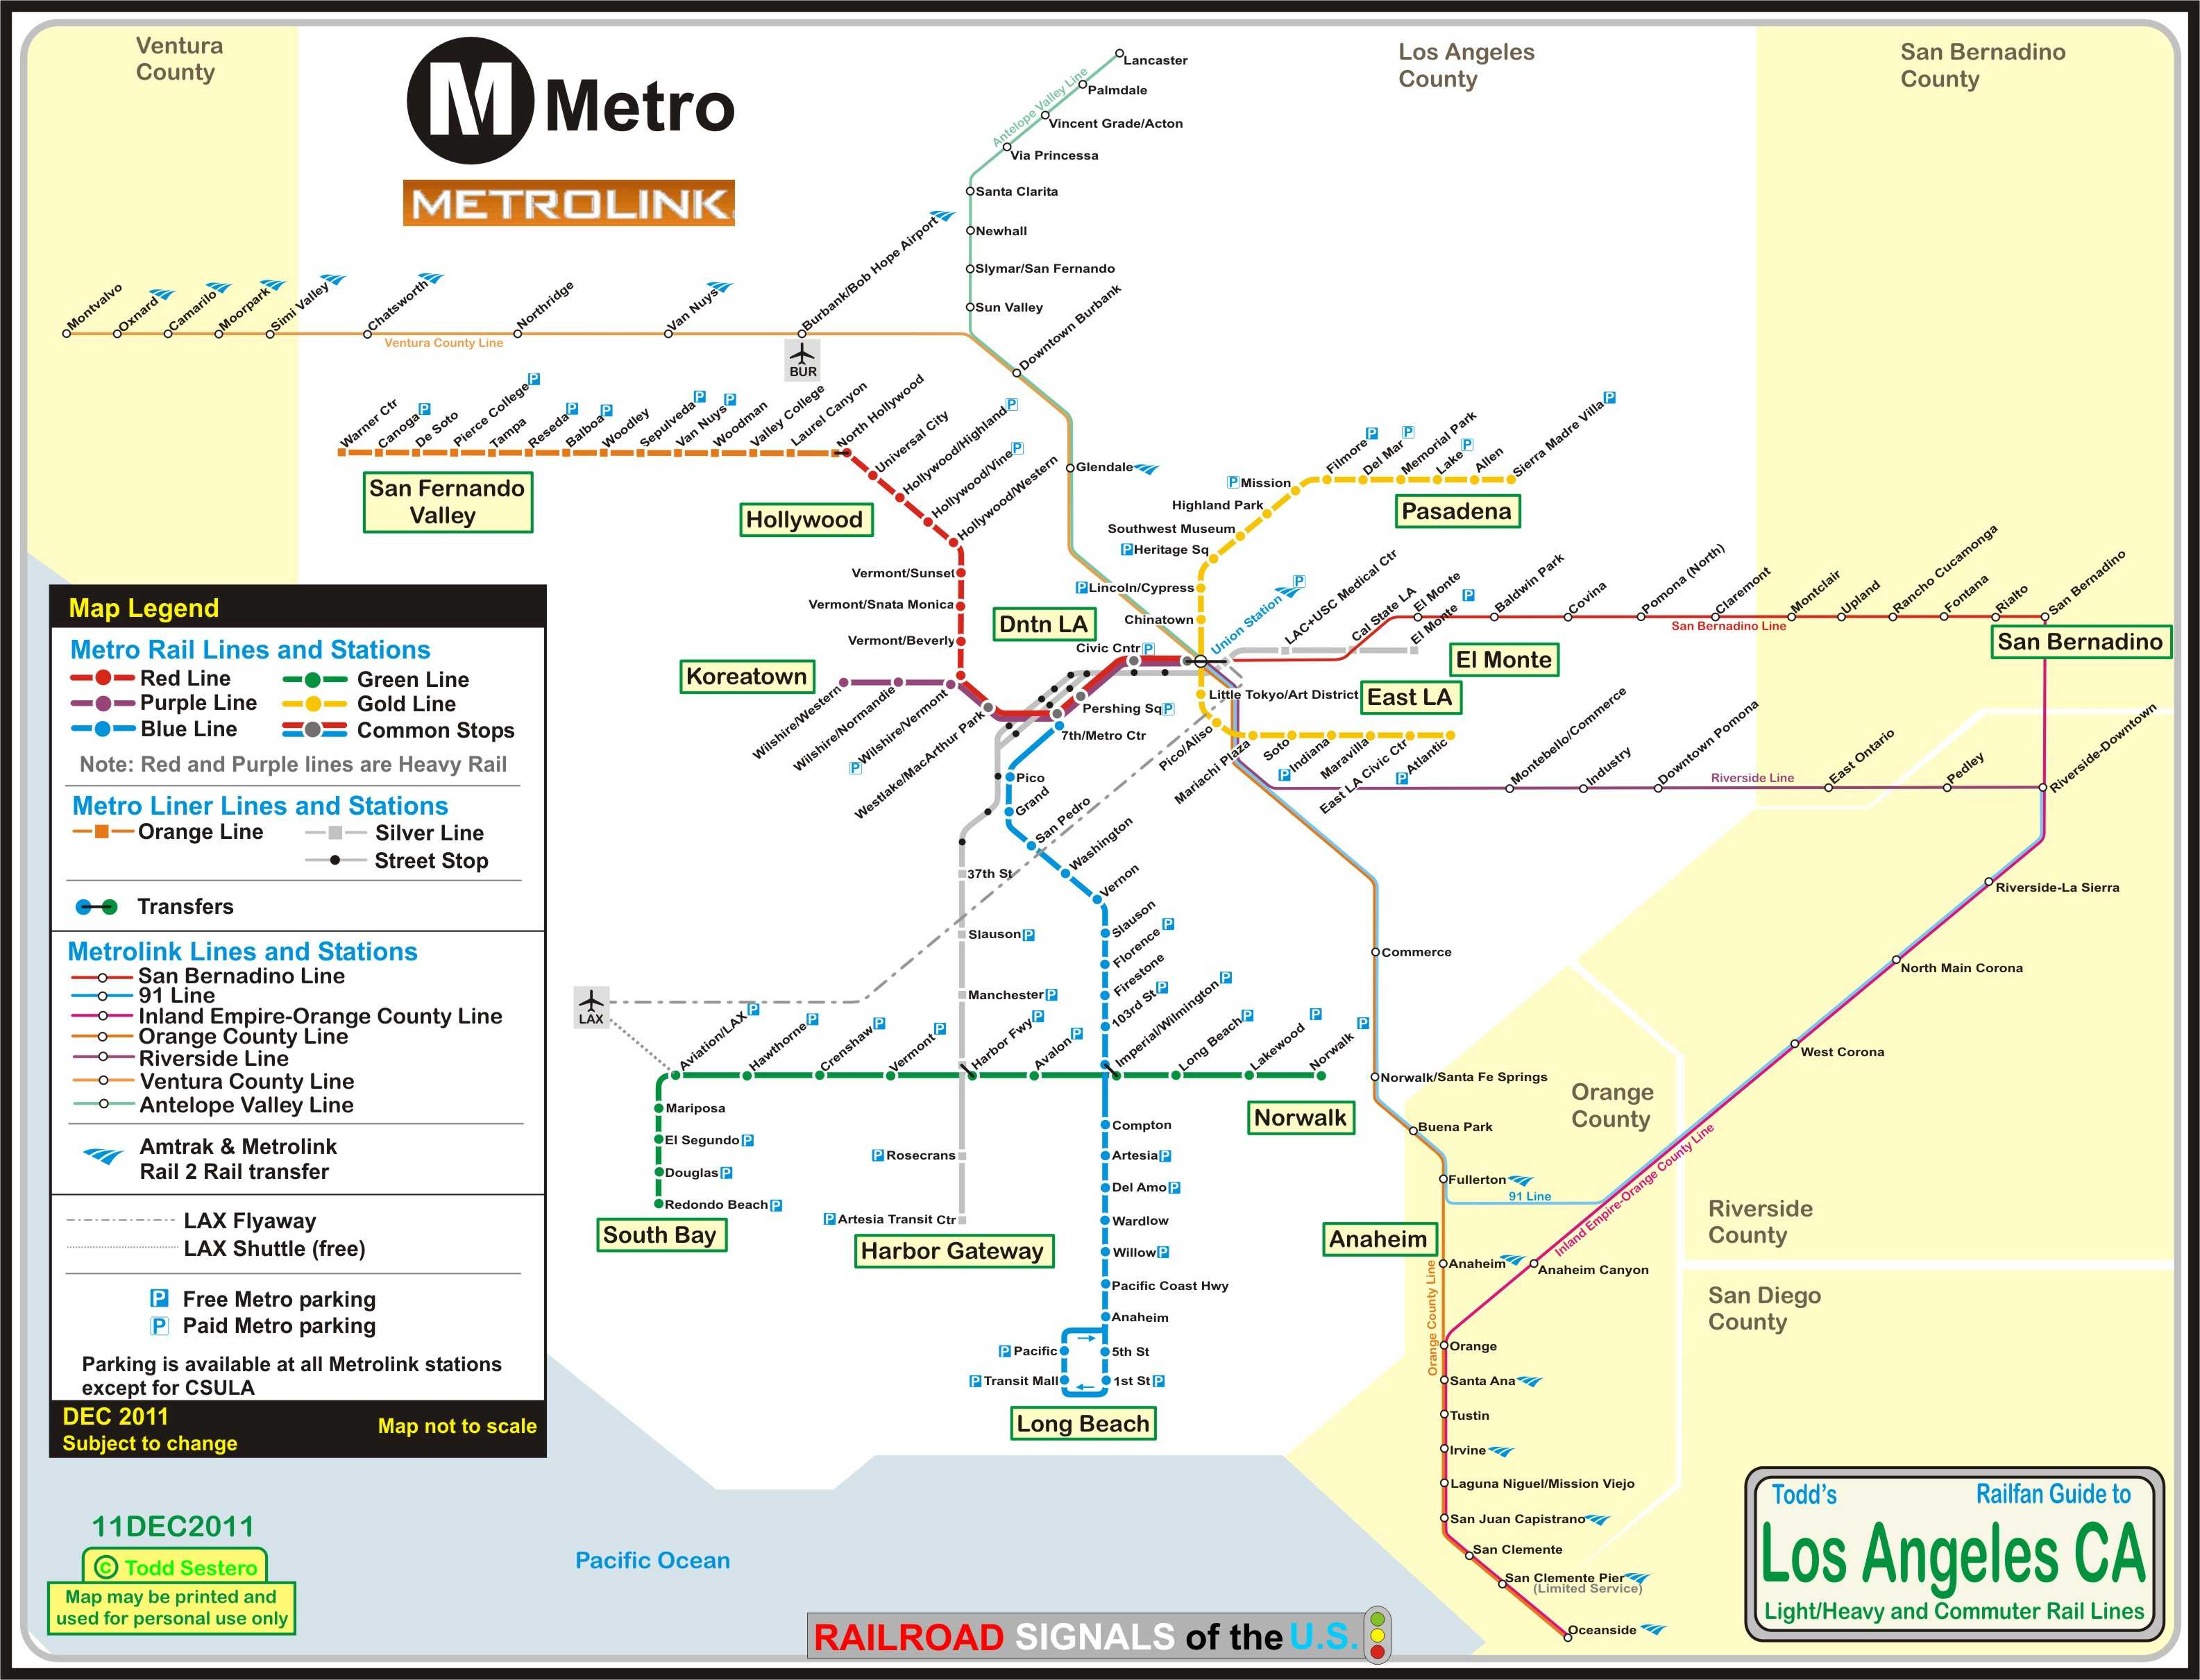 la metro rail expansion map 2014 with Transit on Map Of Montreal Metro likewise Sbahn Plan Berlin also Los Angeles Subway Expansion About The Purple Line together with Showthread together with New york.